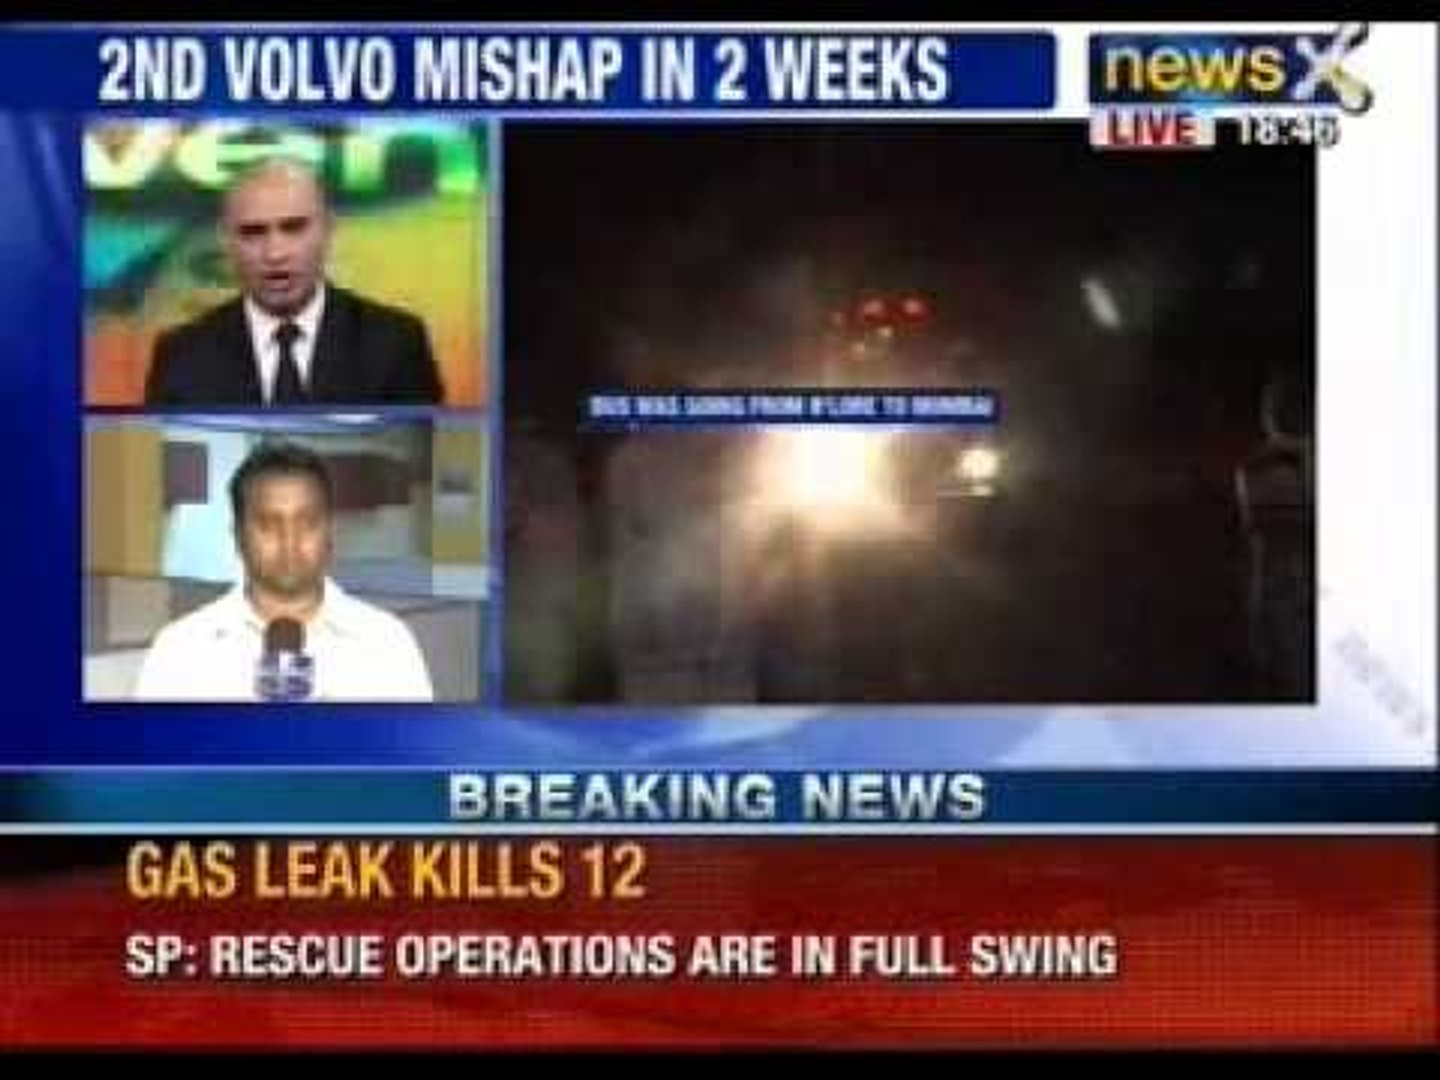 Seven killed as Mumbai-bound Volvo bus catches fire - News X